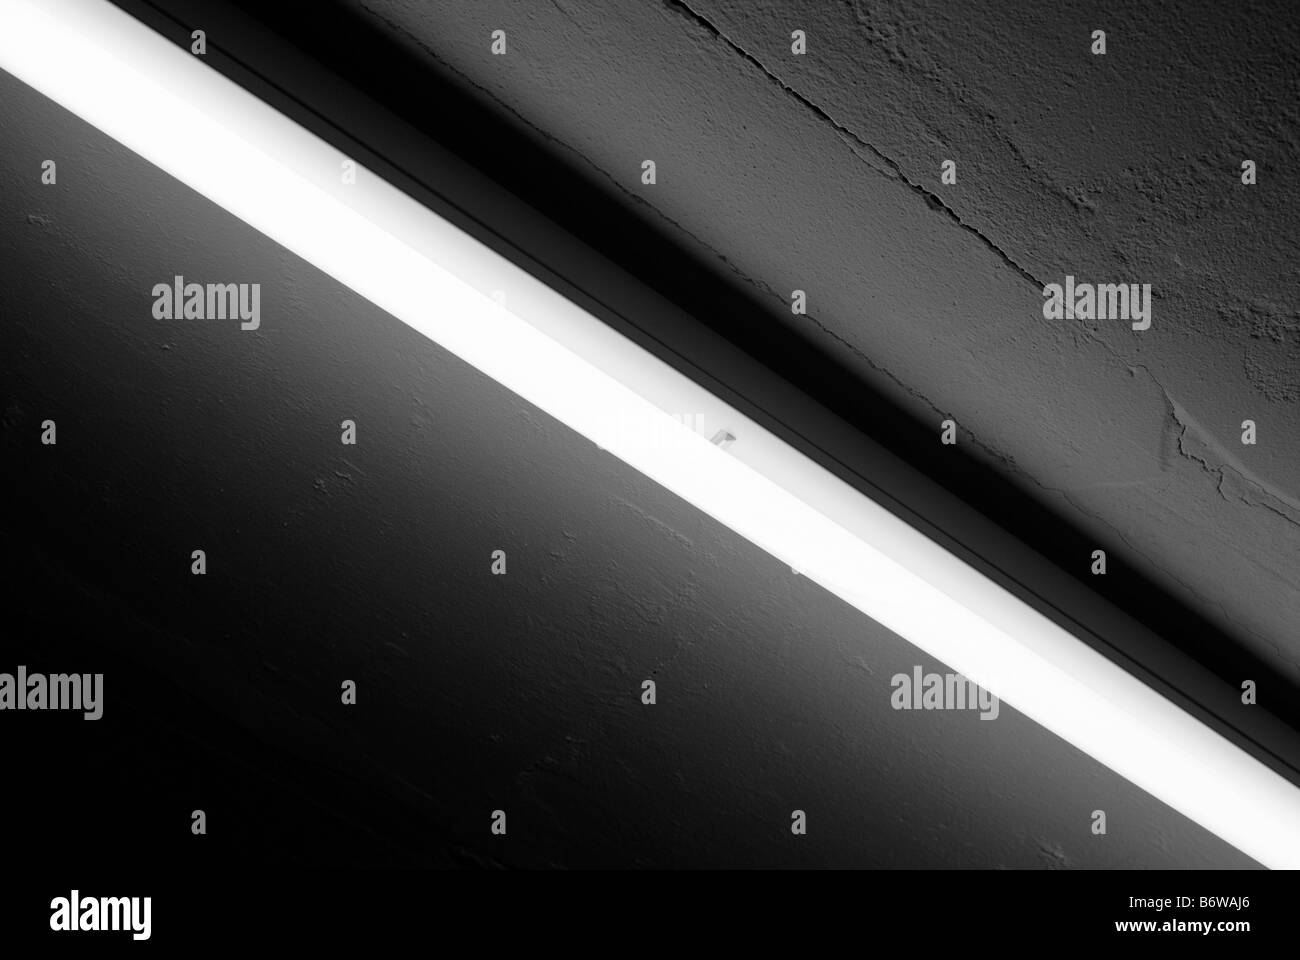 NEON CEILING - Stock Image